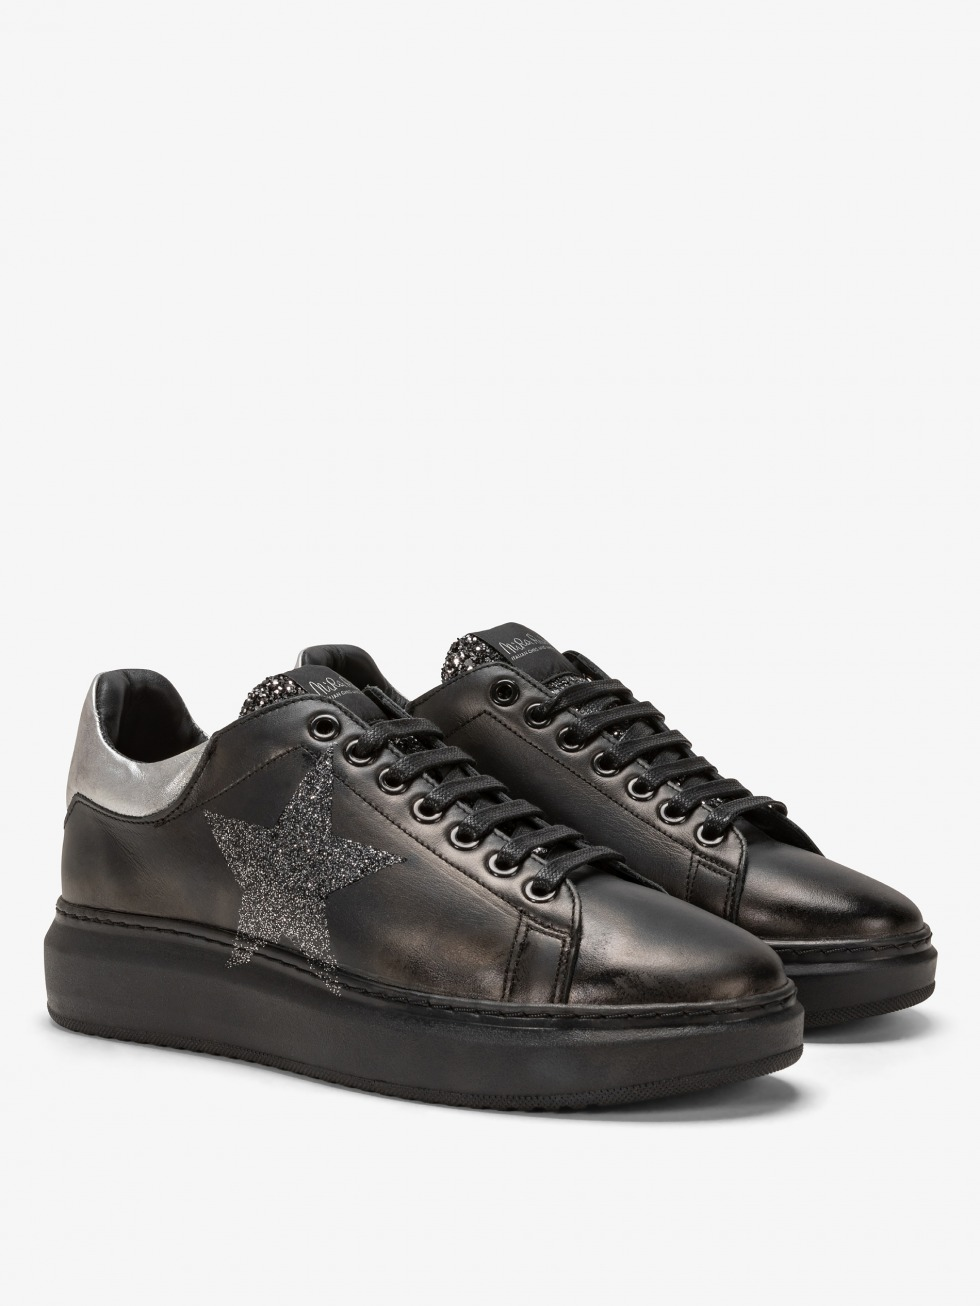 Angel Sneakers All Black - Silver Star